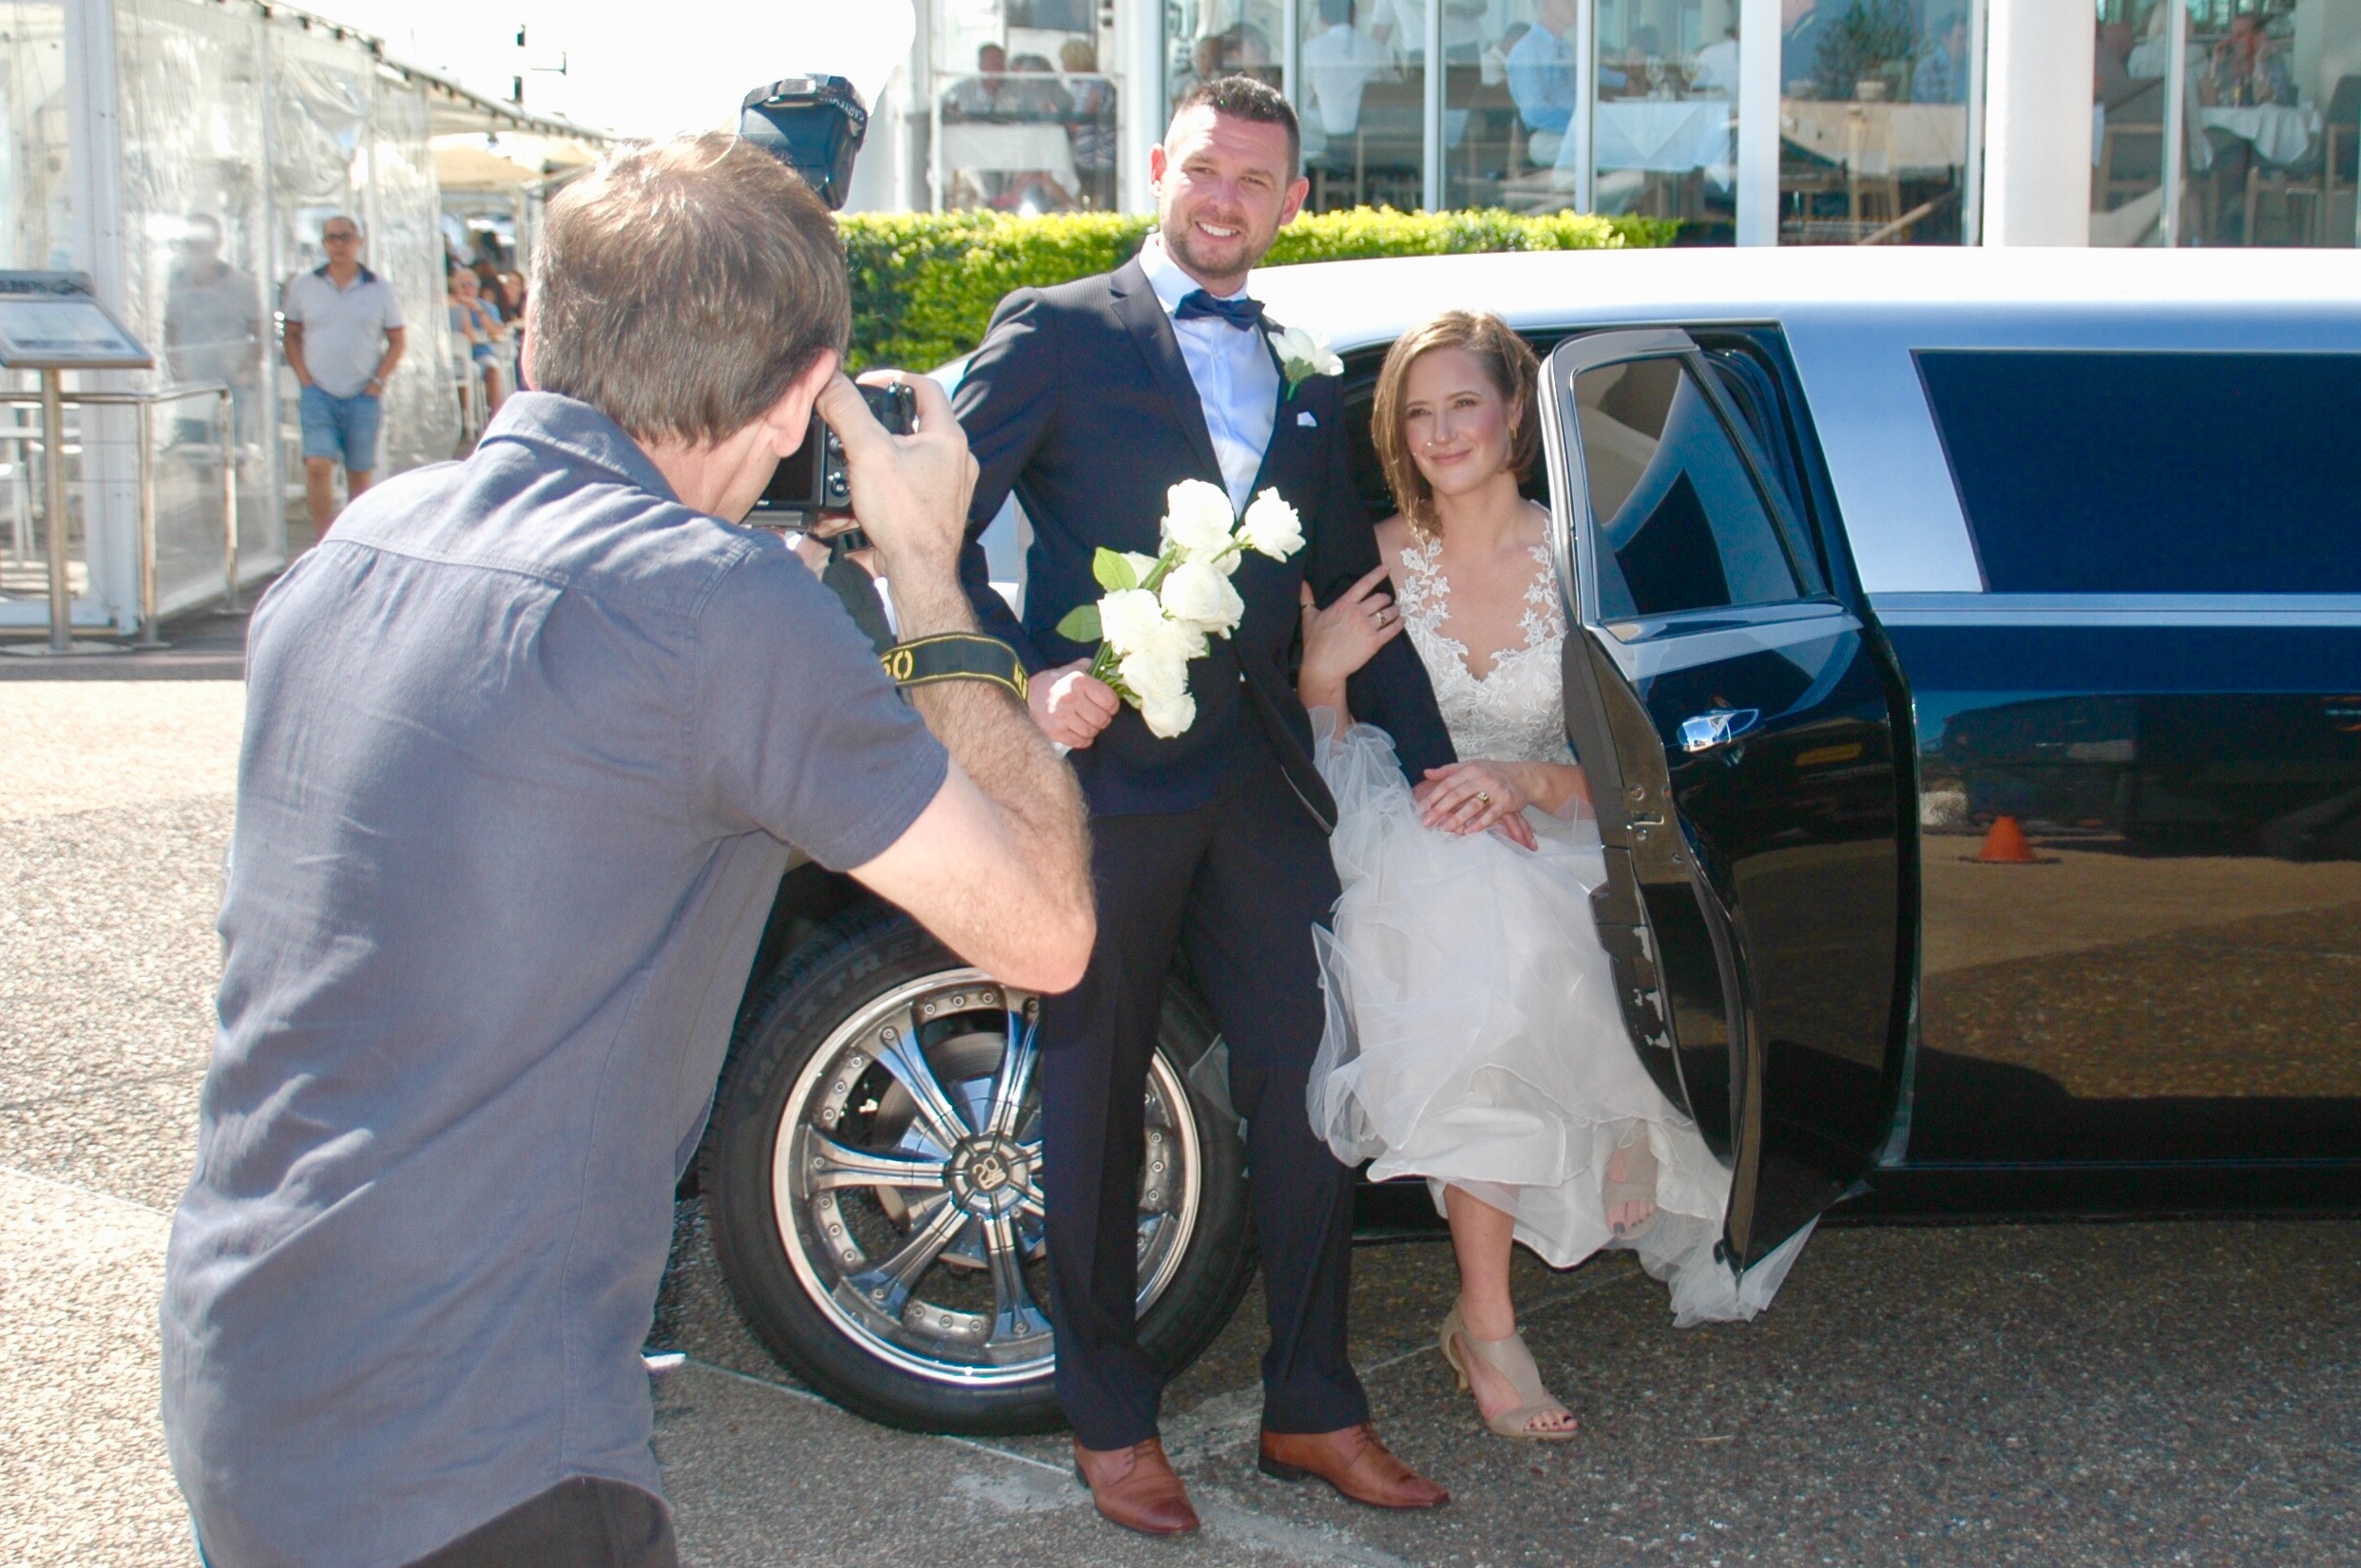 professional wedding photographer Gold coast cruises deluxe wedding package